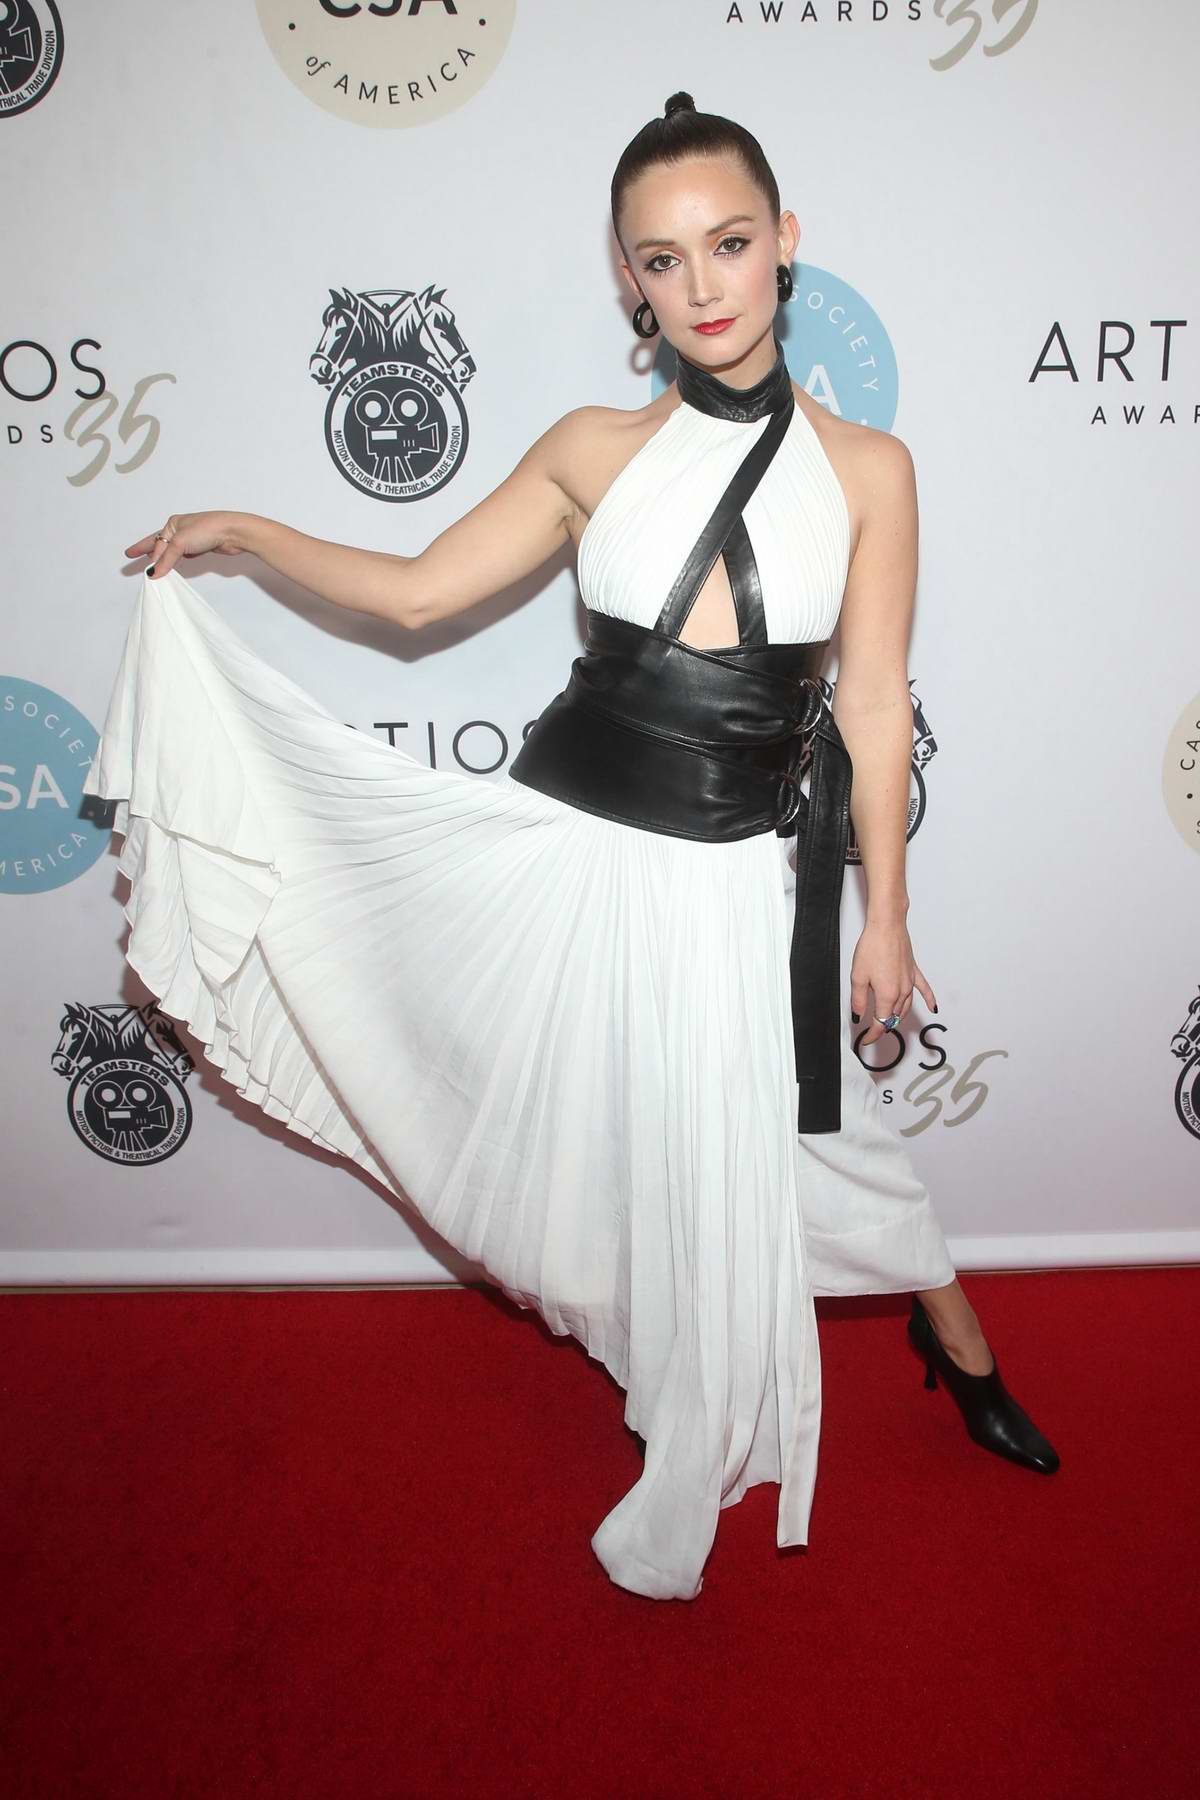 Billie Lourd attends the 2020 Casting Society of America's Artios Awards at Beverly Hilton Hotel in Beverly Hills, California